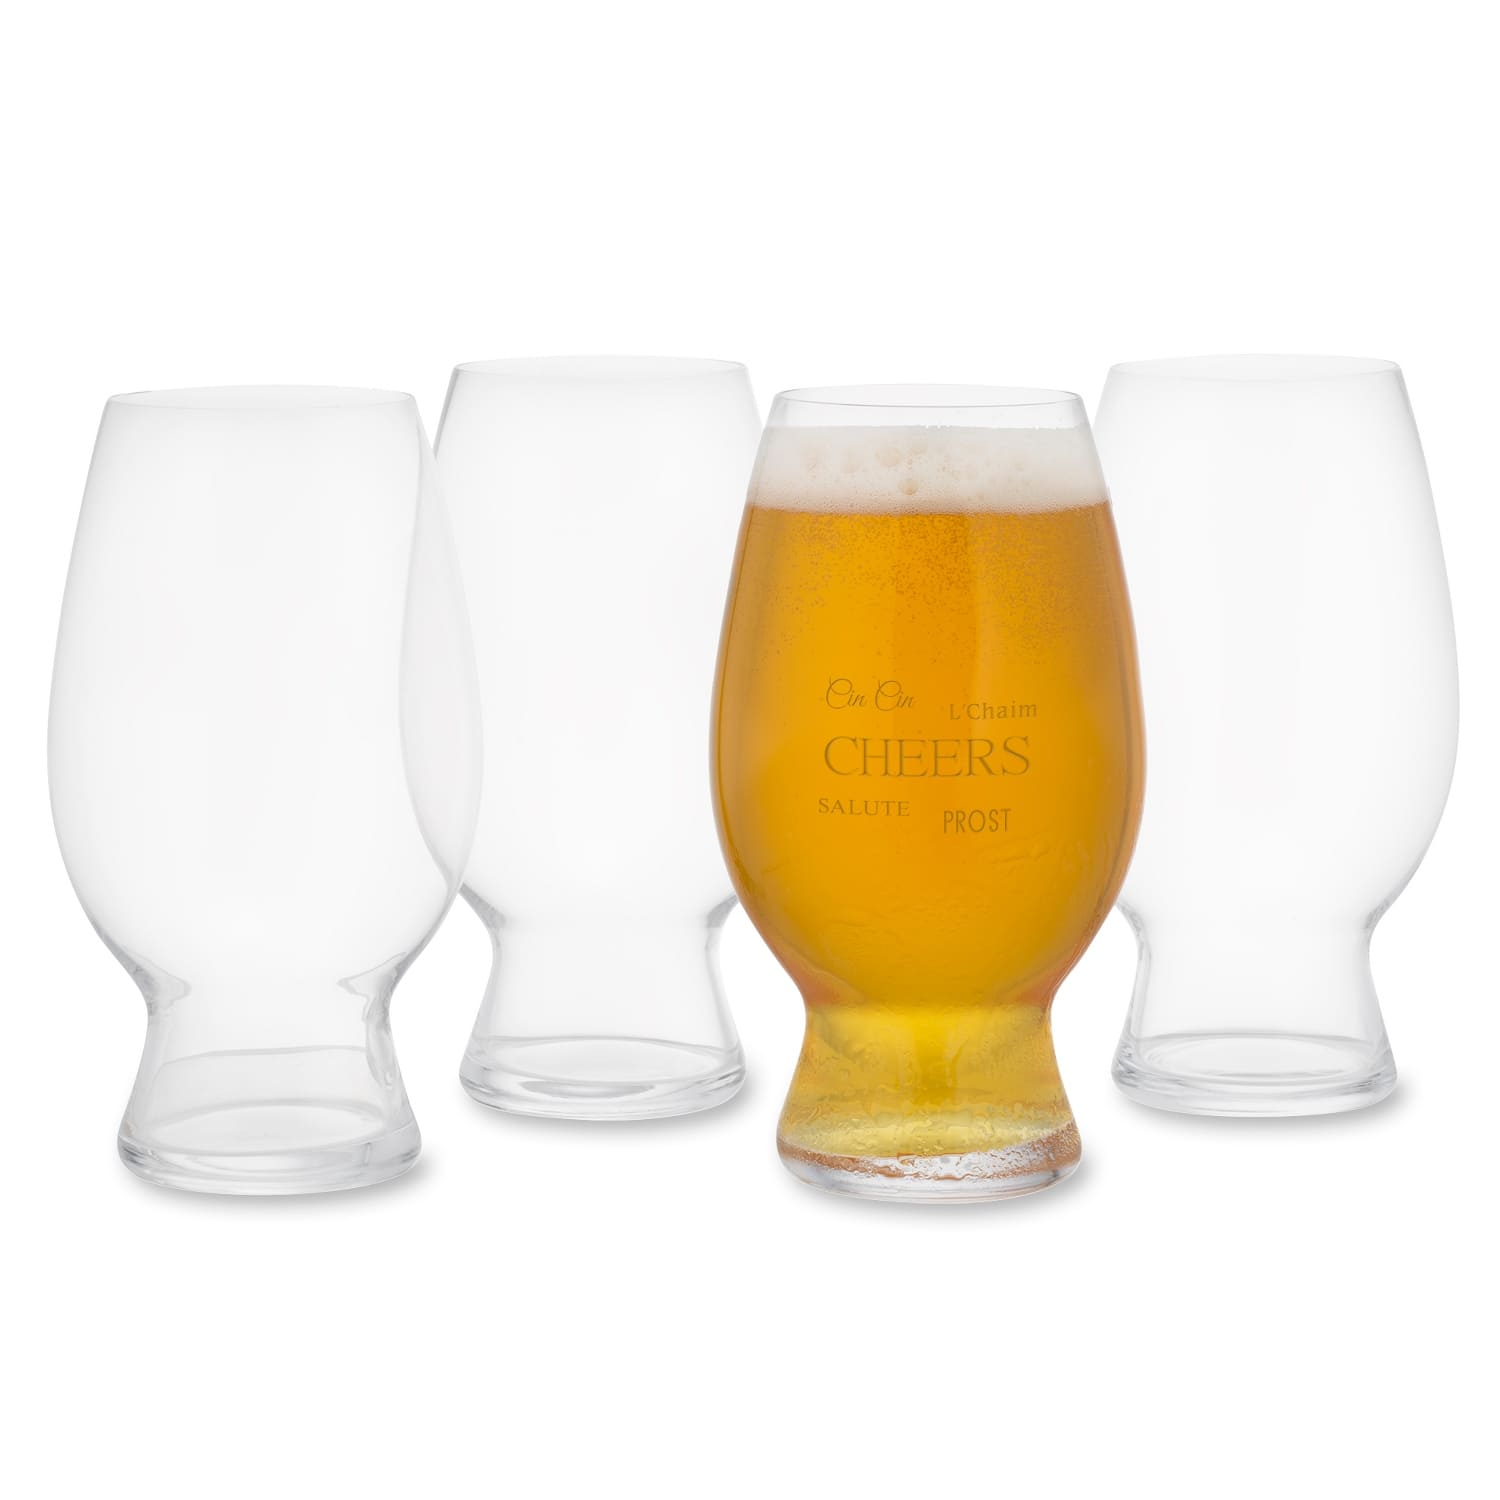 4-Count 26-Oz Spiegelau American Wheat Beer Glass Set $8.50 + Free shipping